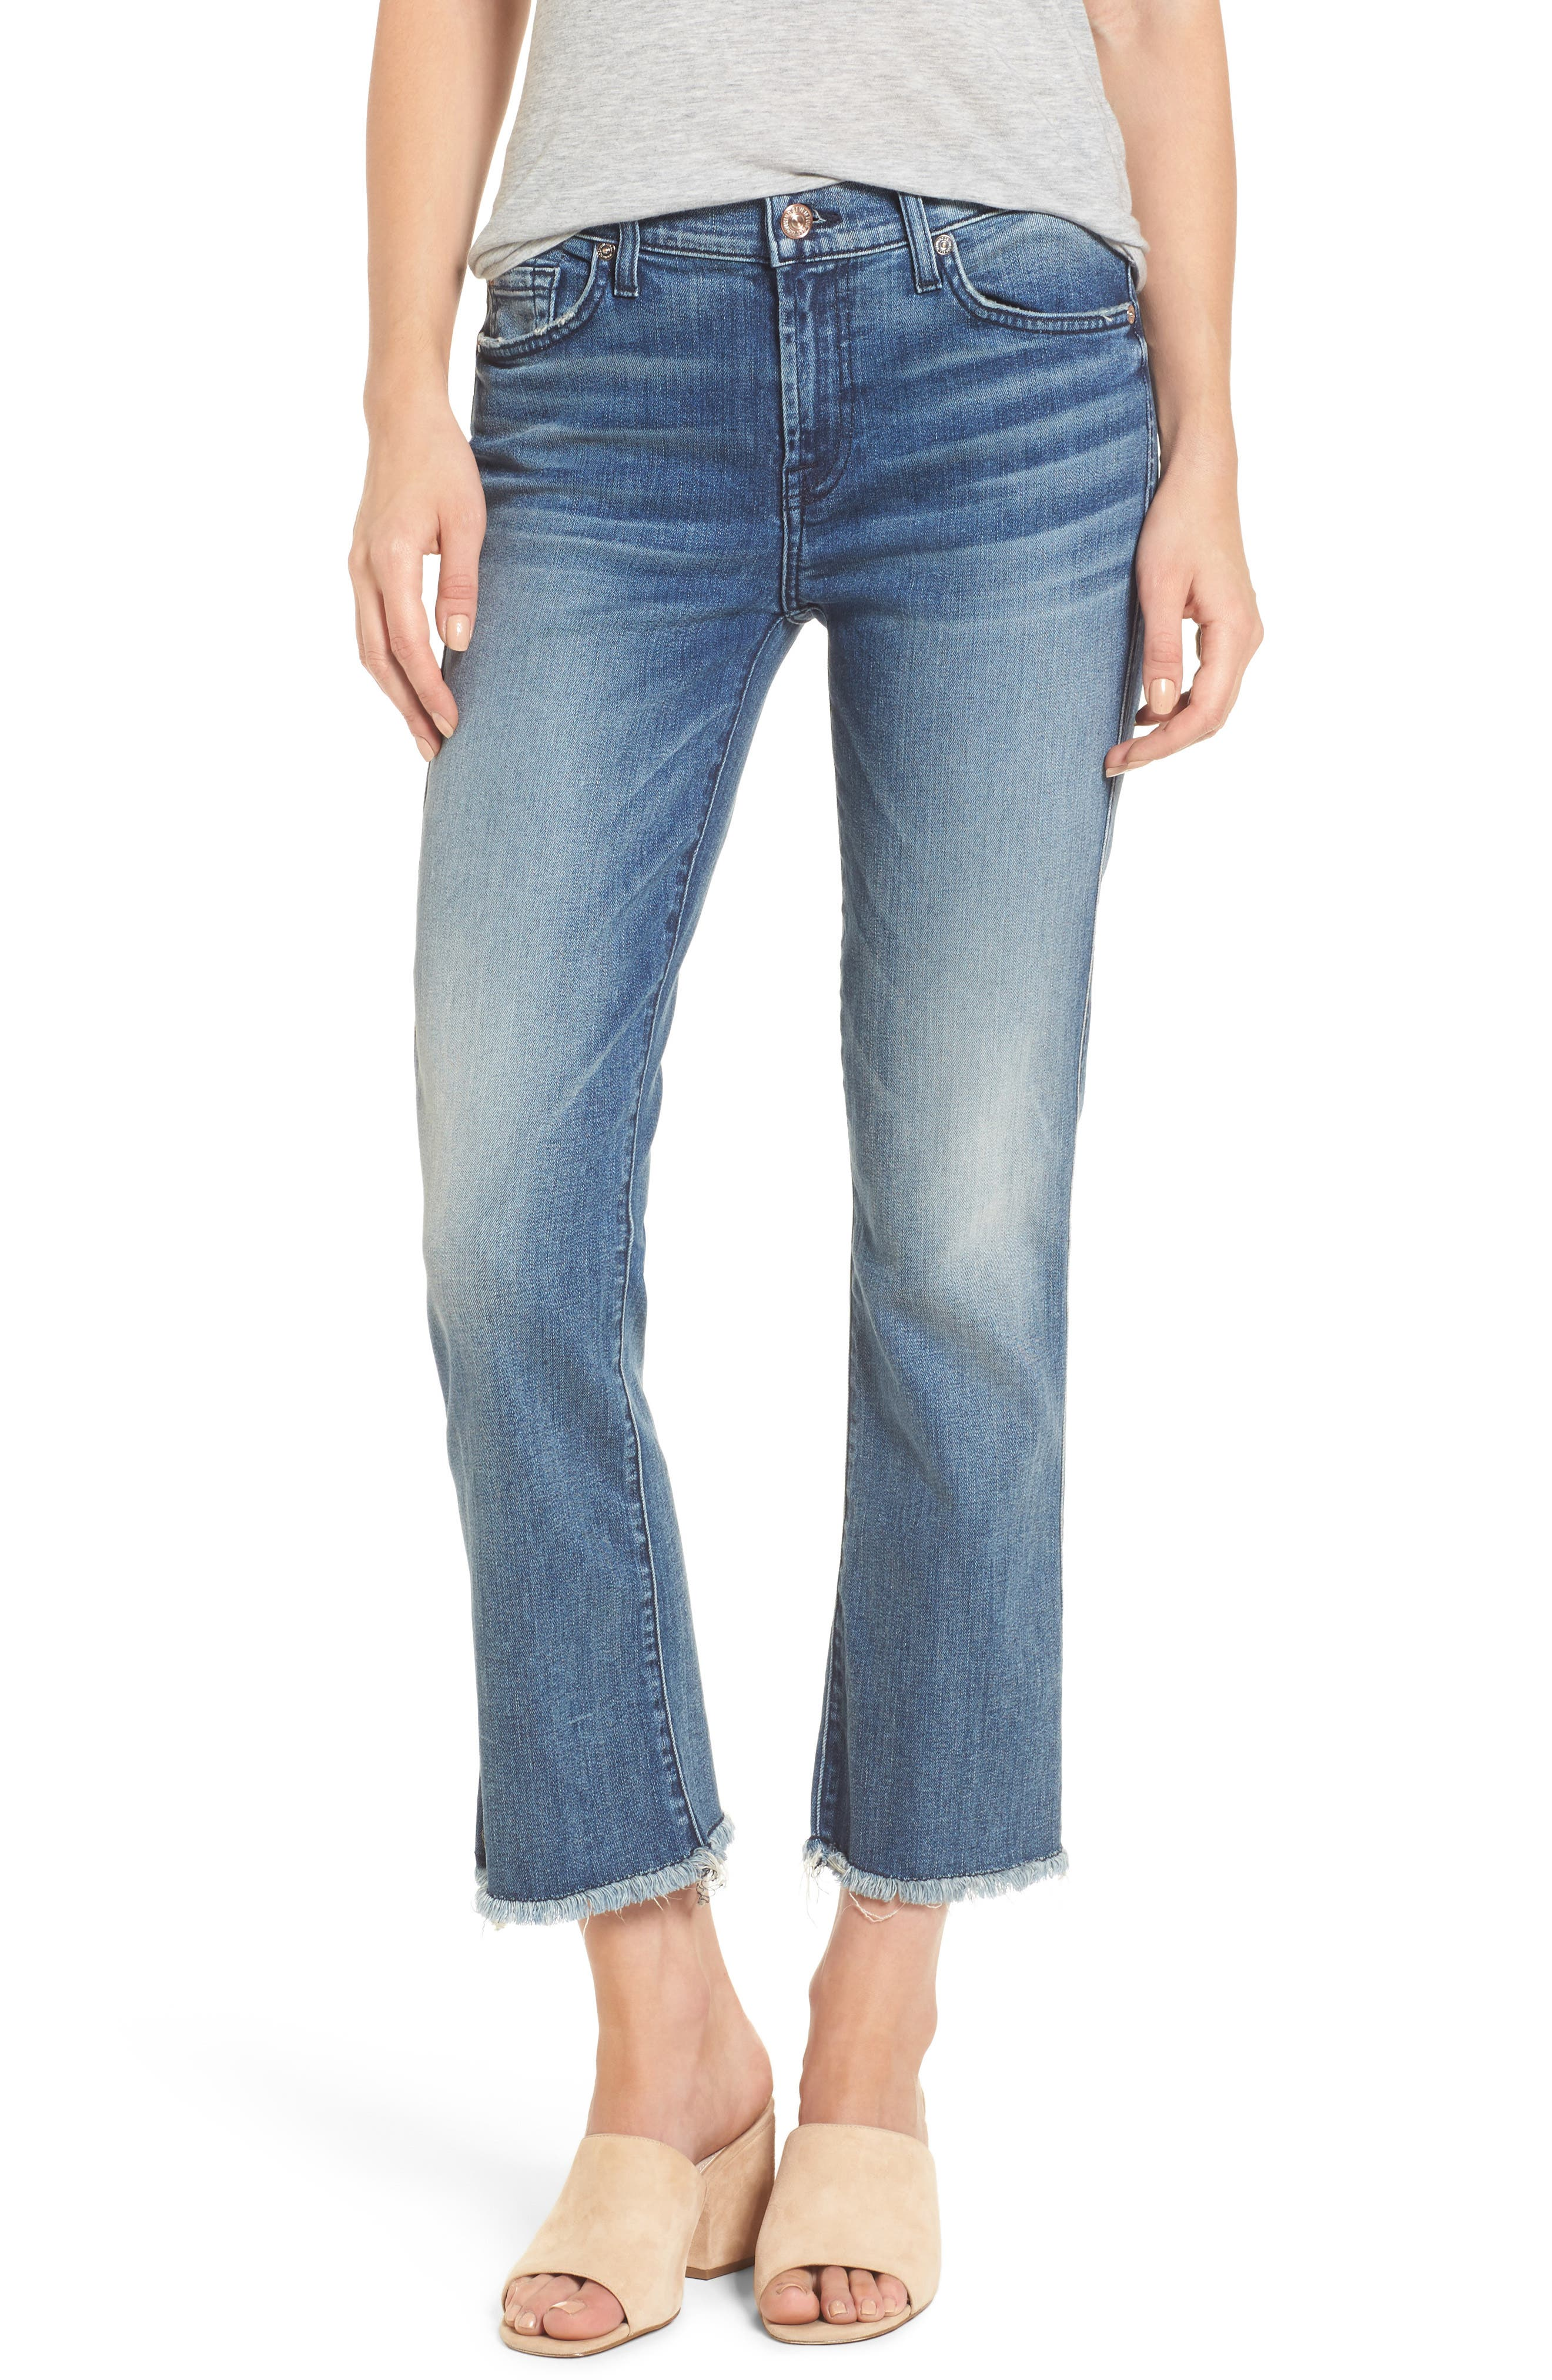 Alternate Image 1 Selected - 7 For All Mankind® Crop Bootcut Jeans (Wall Street Heritage)